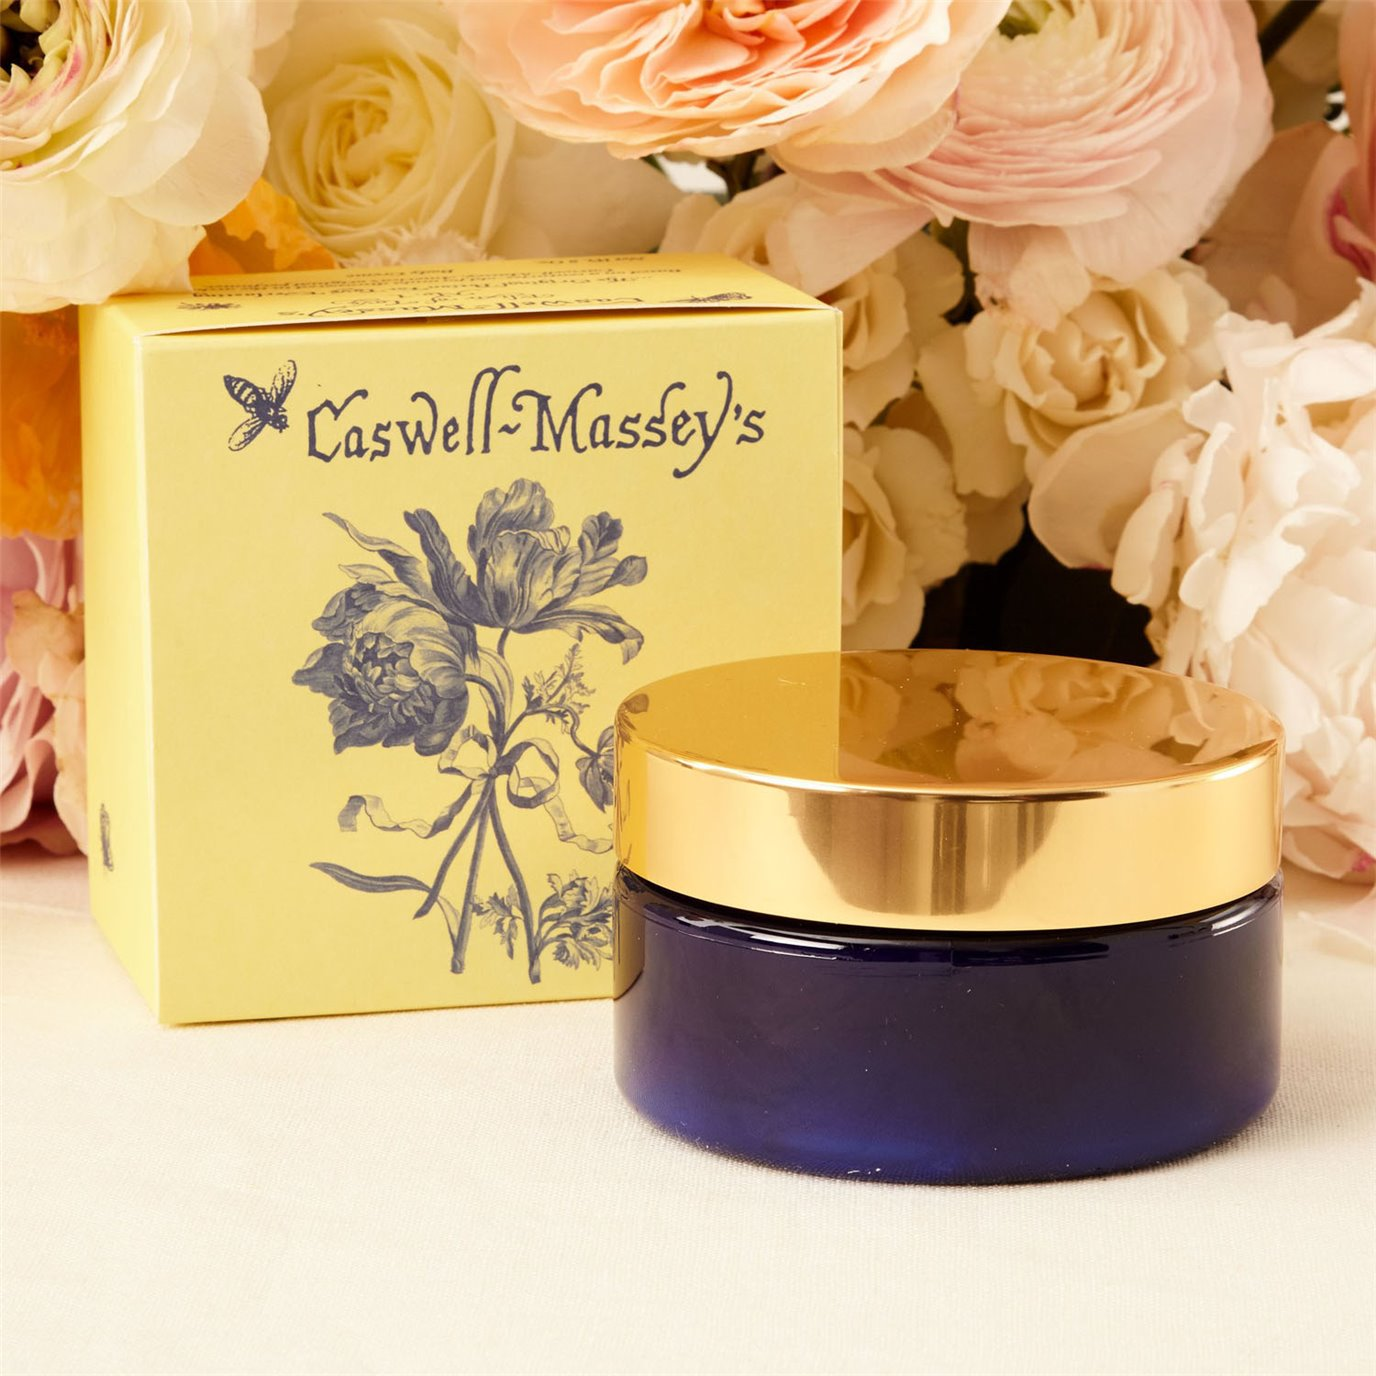 Caswell-Massey Elixir of Love No. 1 Body Creme (8 oz)